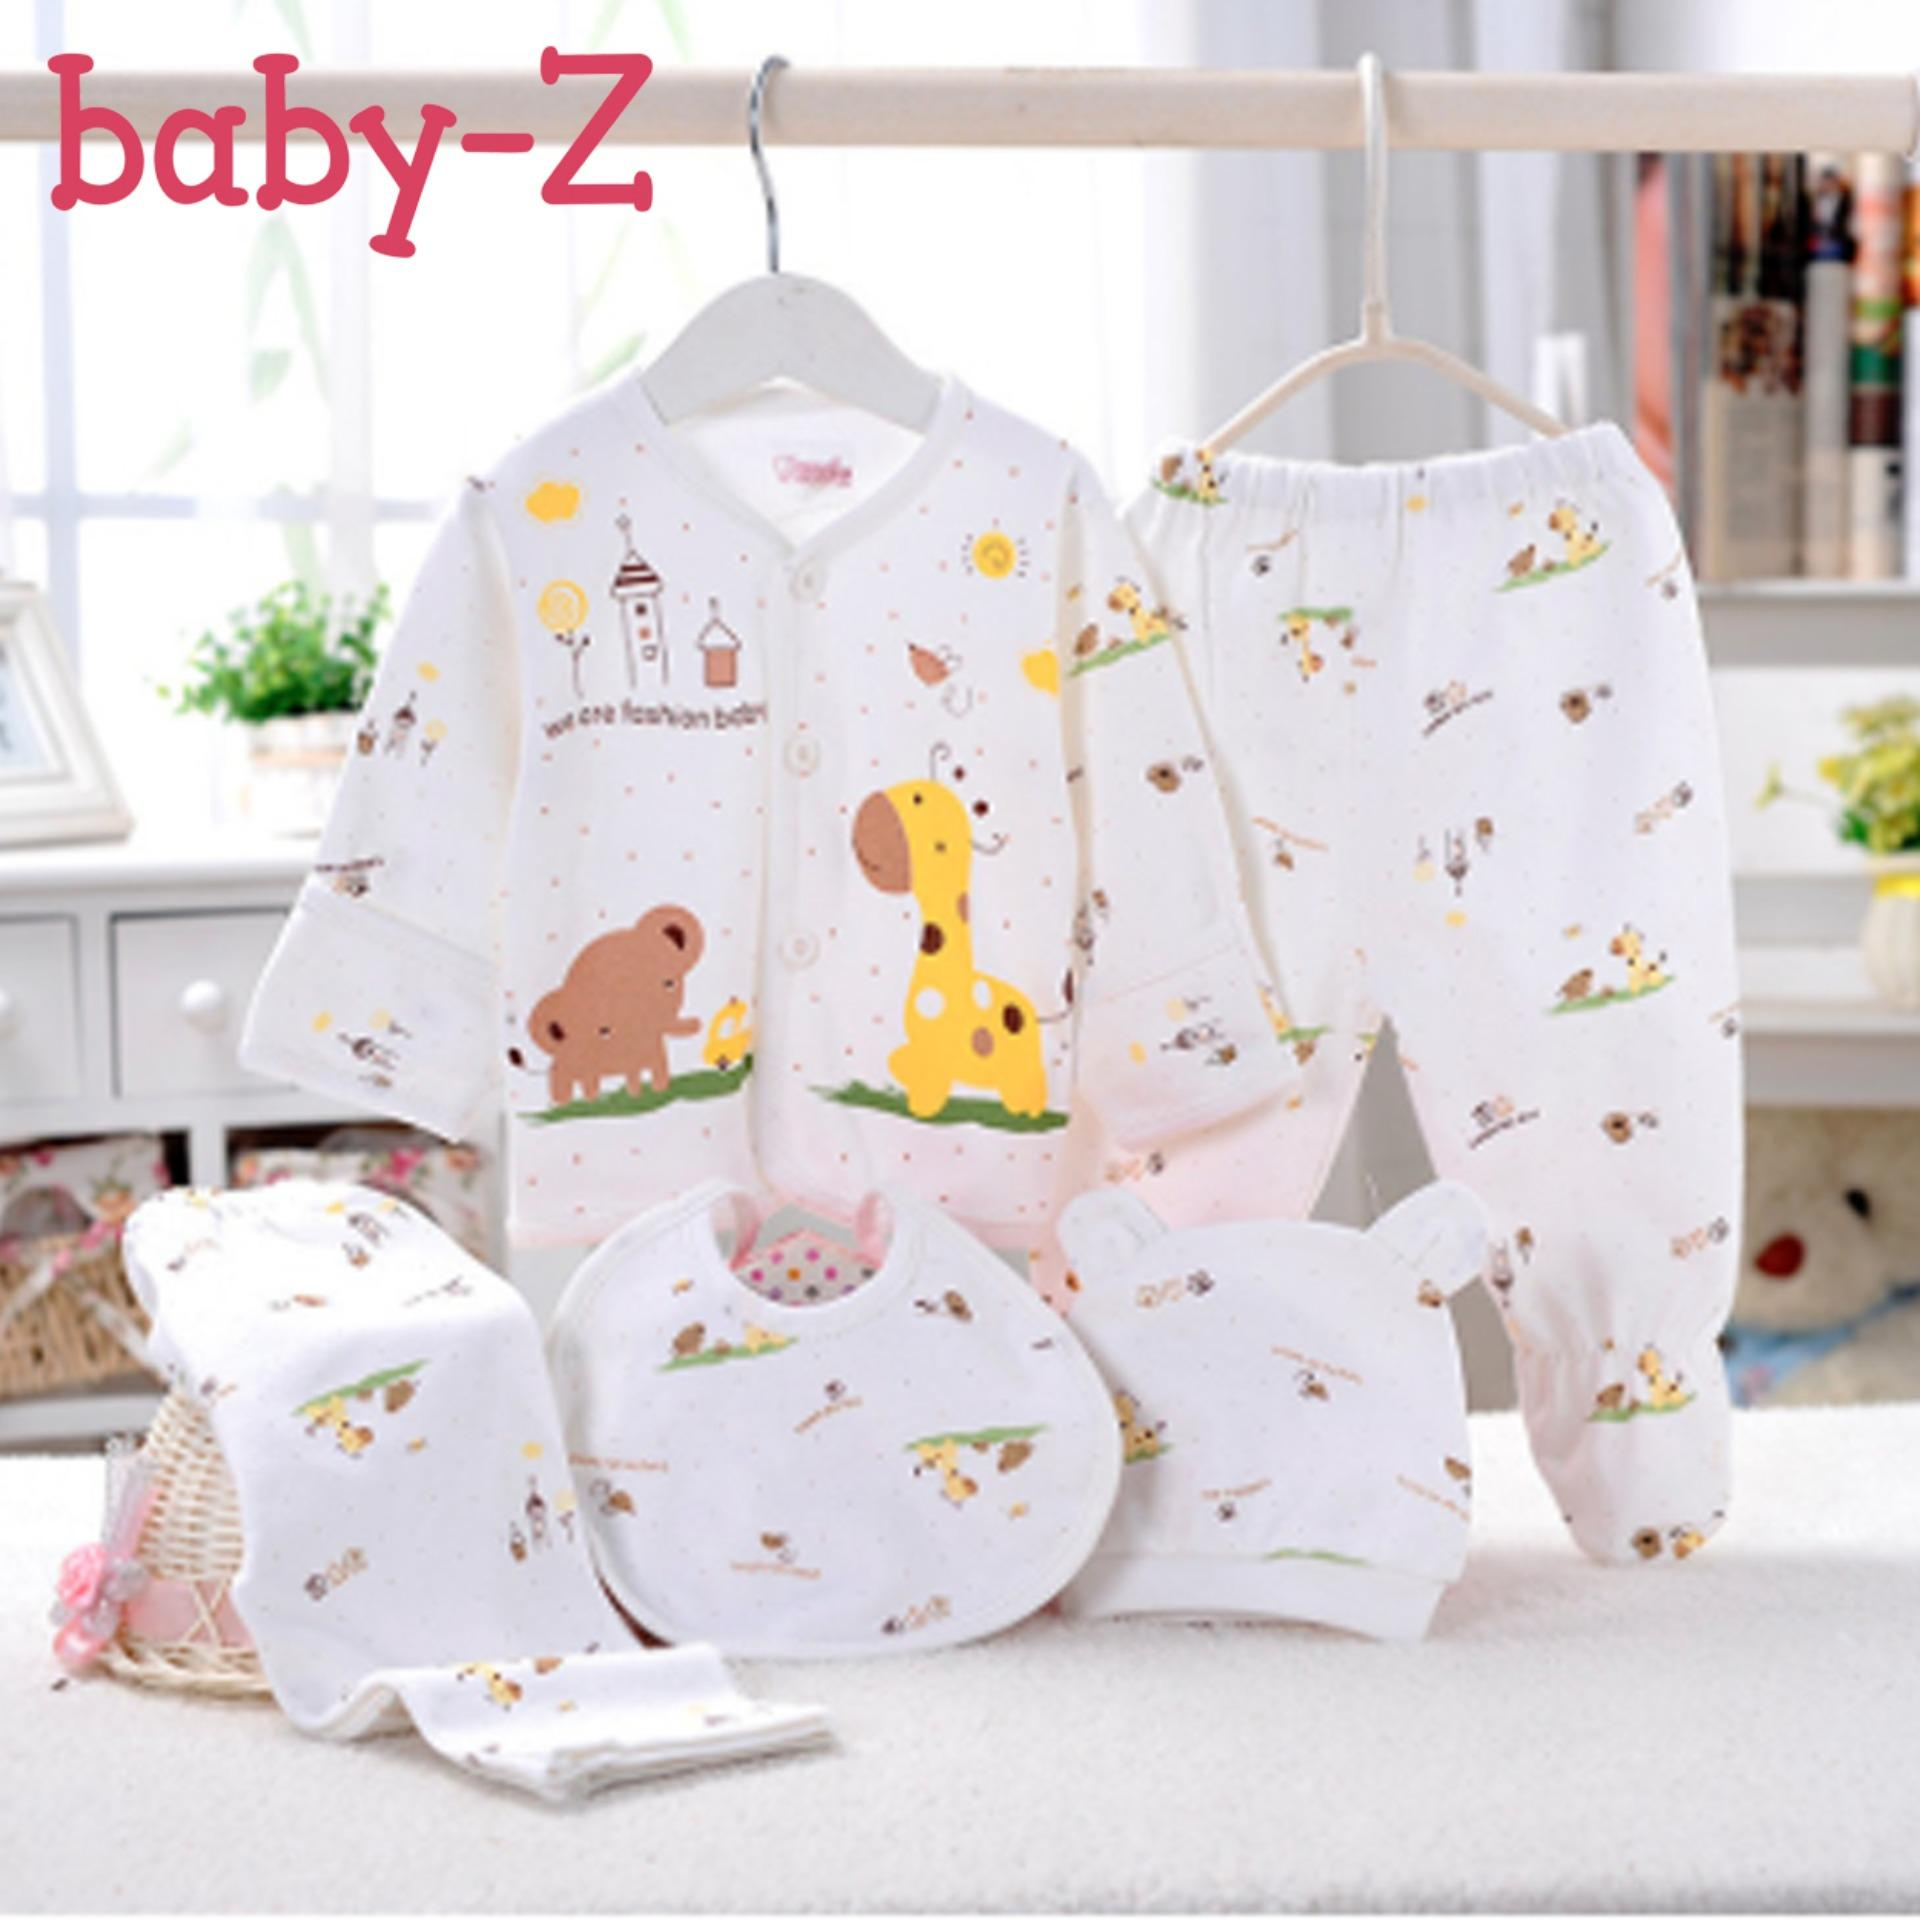 c35cb4b06 Newborn Baby Clothing for sale - Newborn Clothing Sets online brands ...